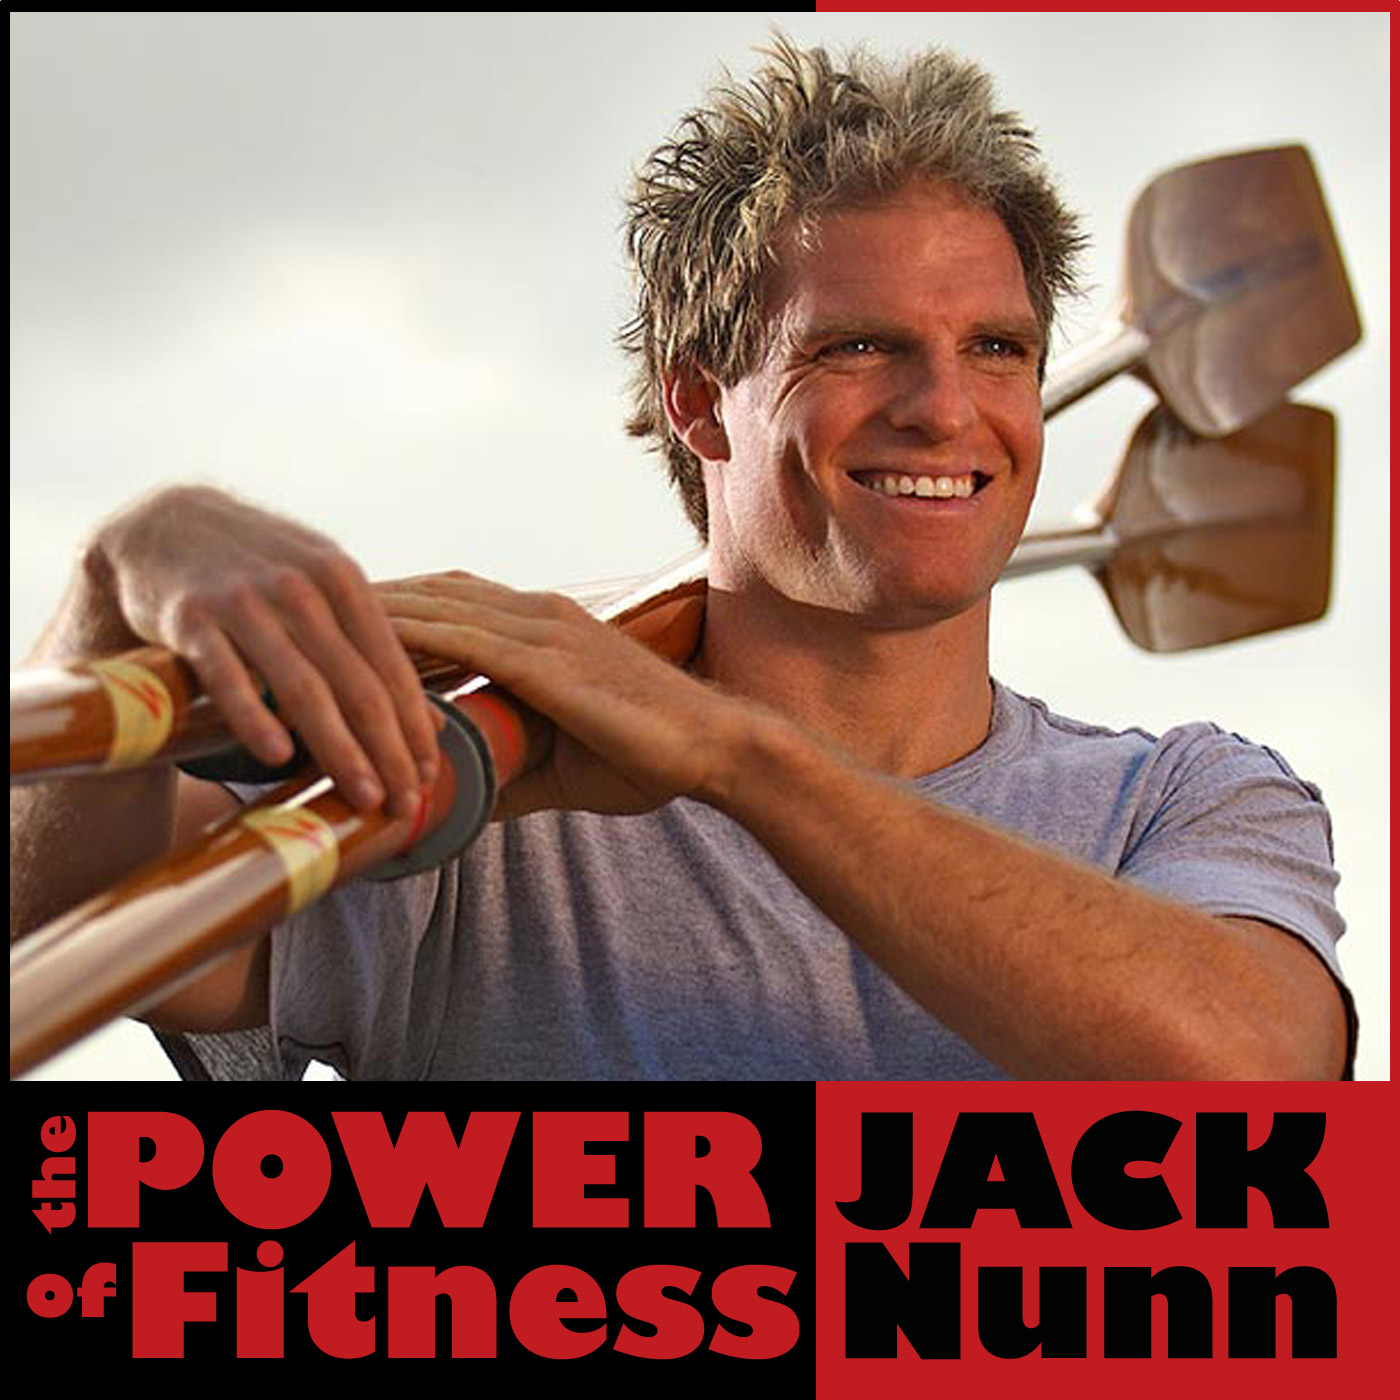 The Power of Fitness with Jack Nunn